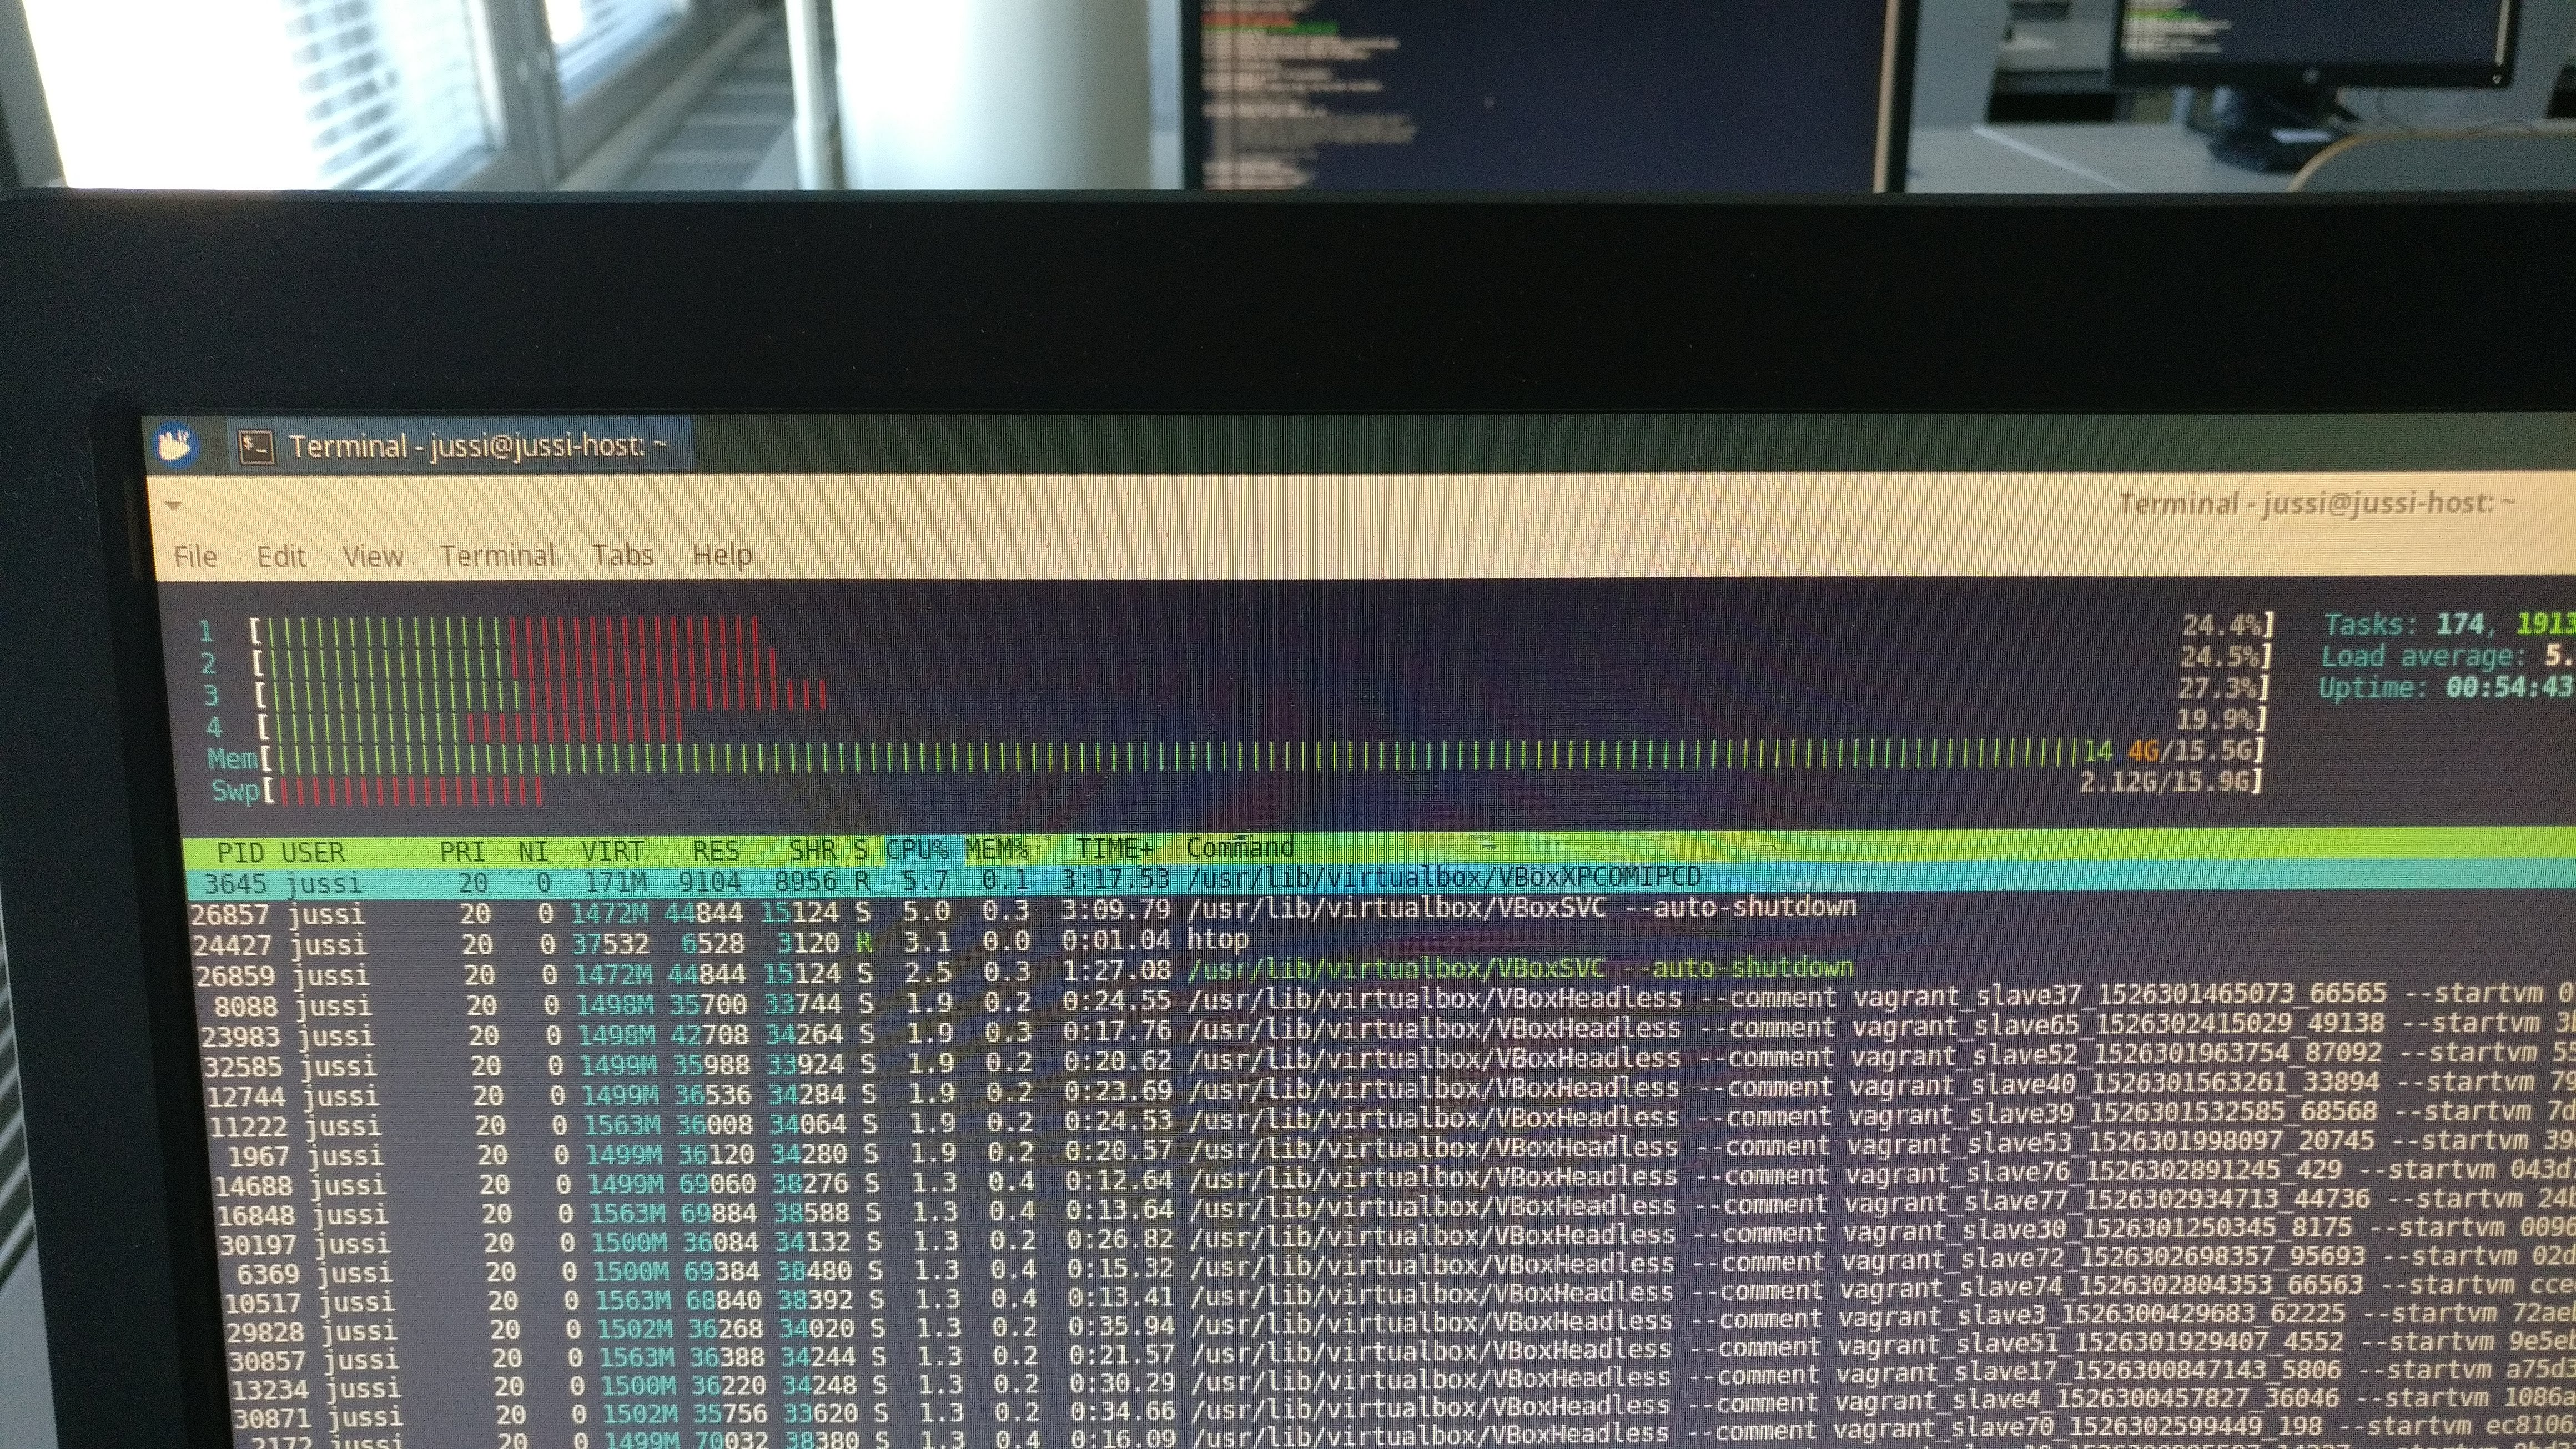 Resource usage with 80 VMs running